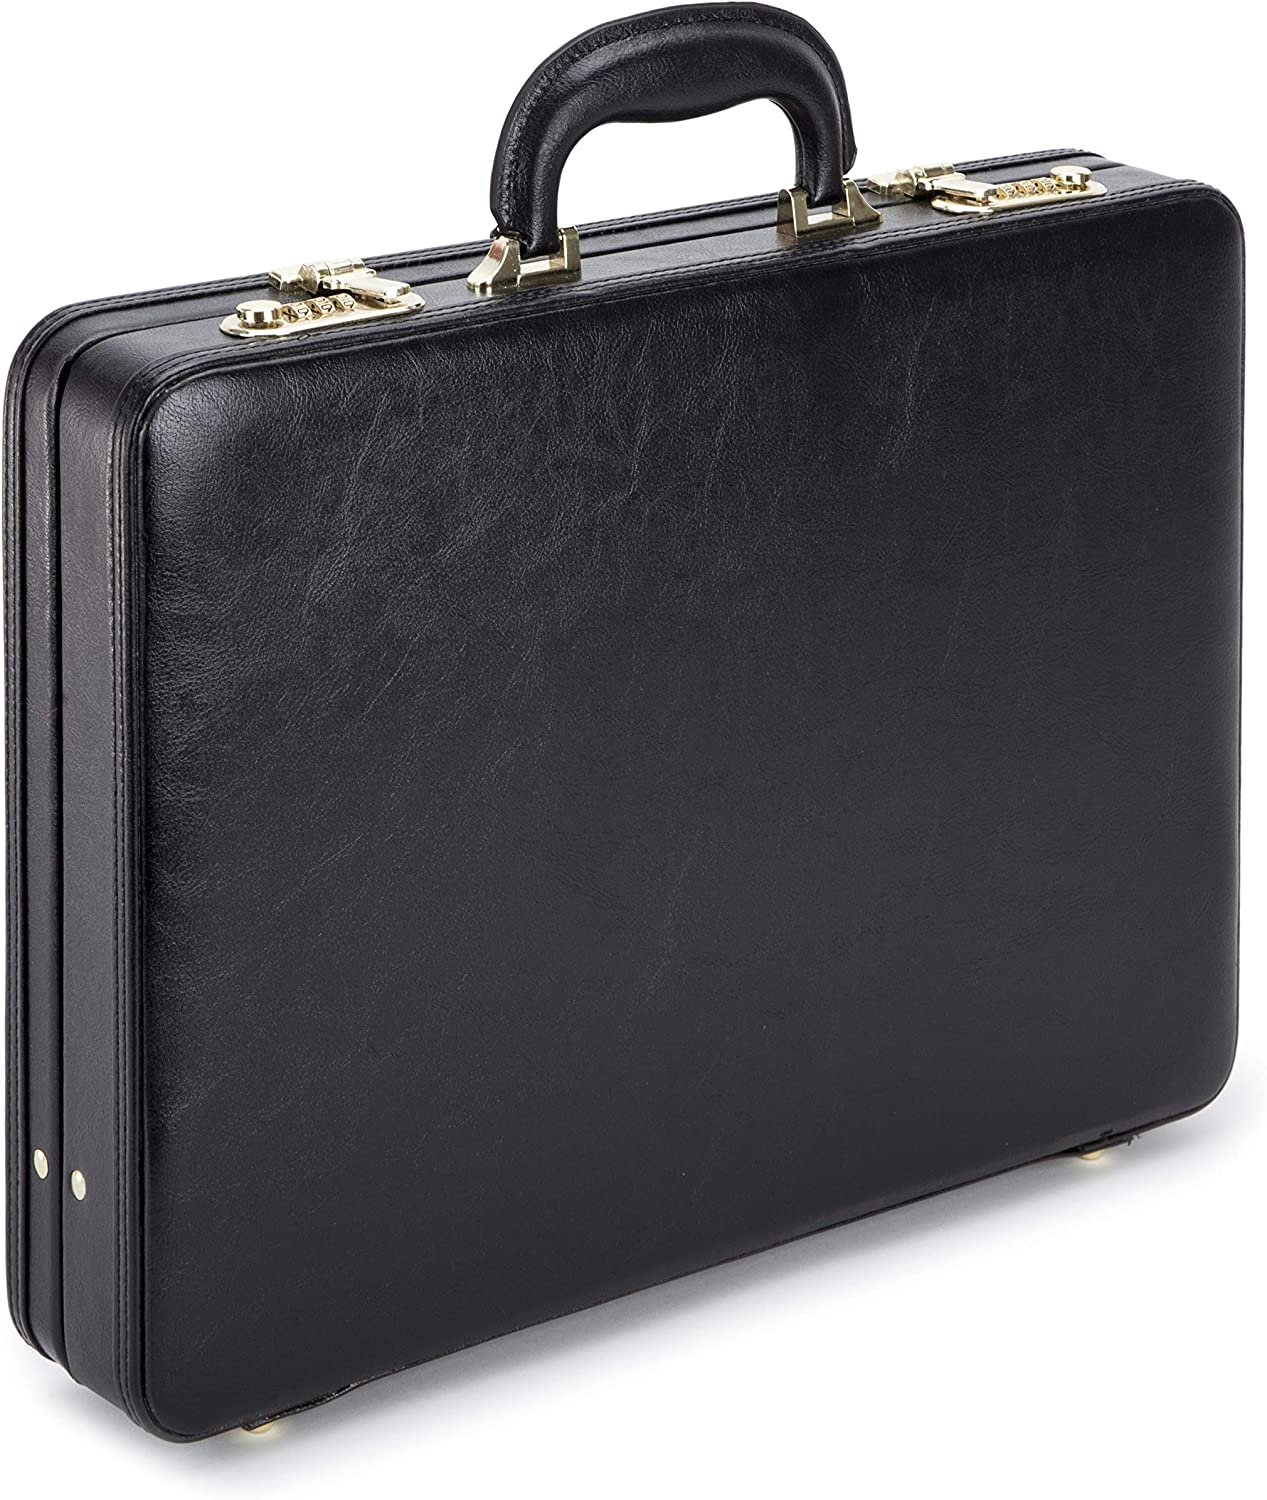 Mens Executive Briefcase Travel PU Leather Attach/é with High Security Combination Locks Black New TOP Quality L43 x H31 x D7cm